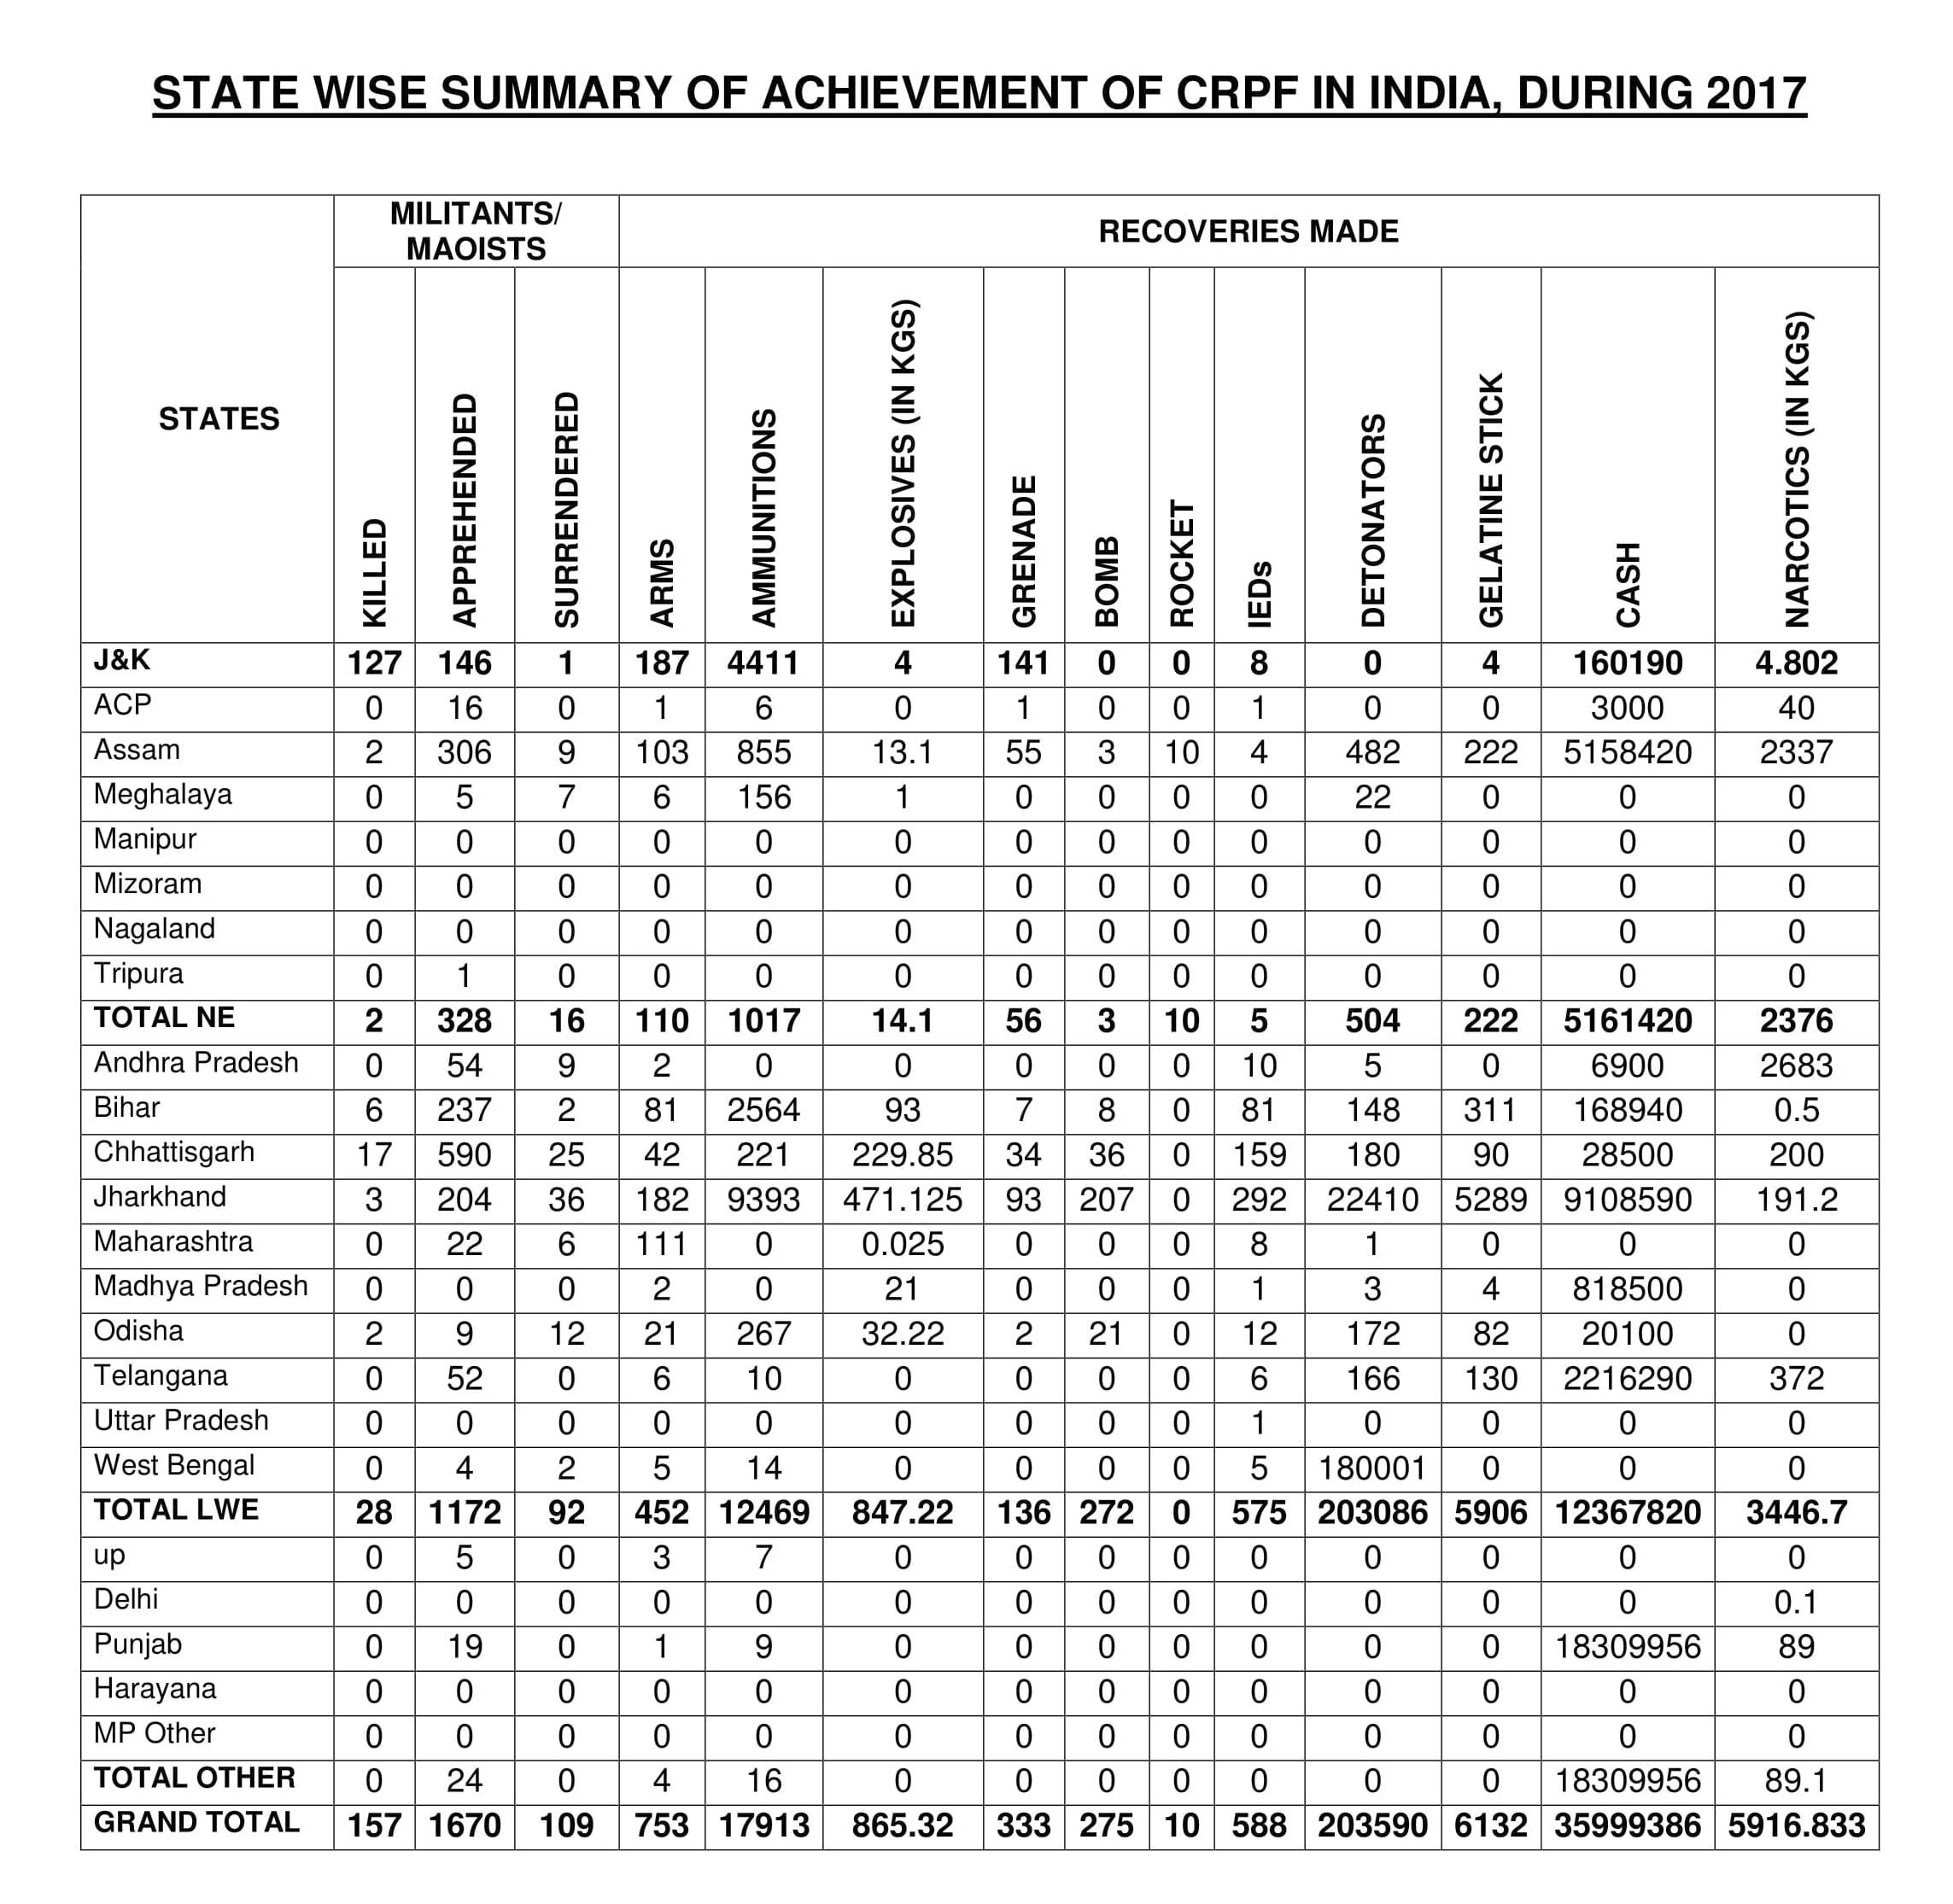 Stare wise Summary of Achievements of CRPF in 2017